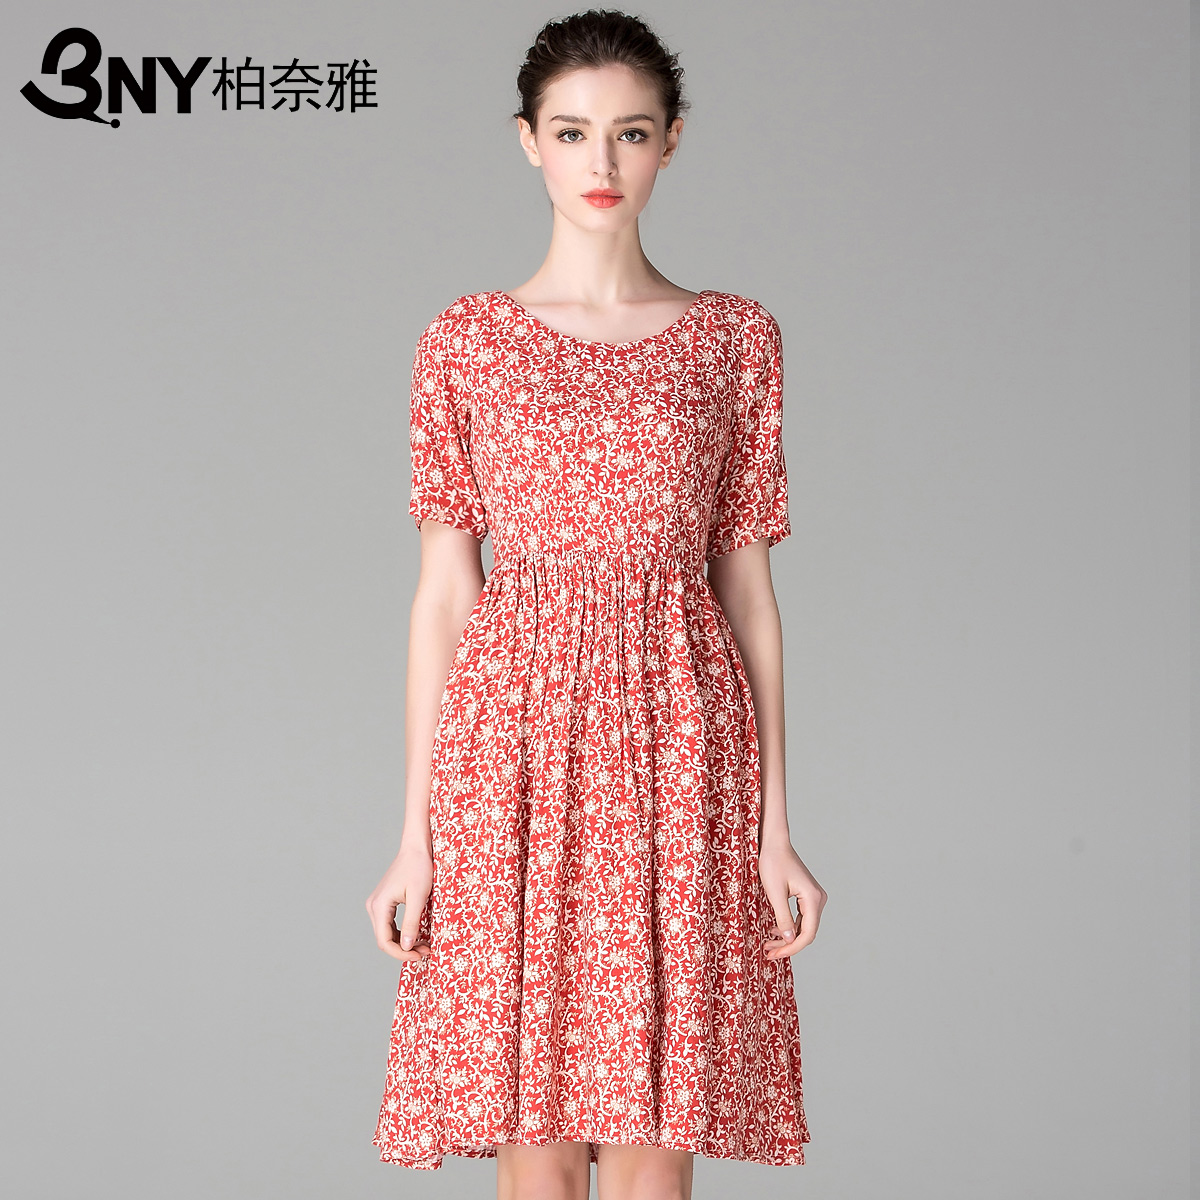 2016 new women's spring and summer garden style floral dress slim waist and long sections bottoming print dress